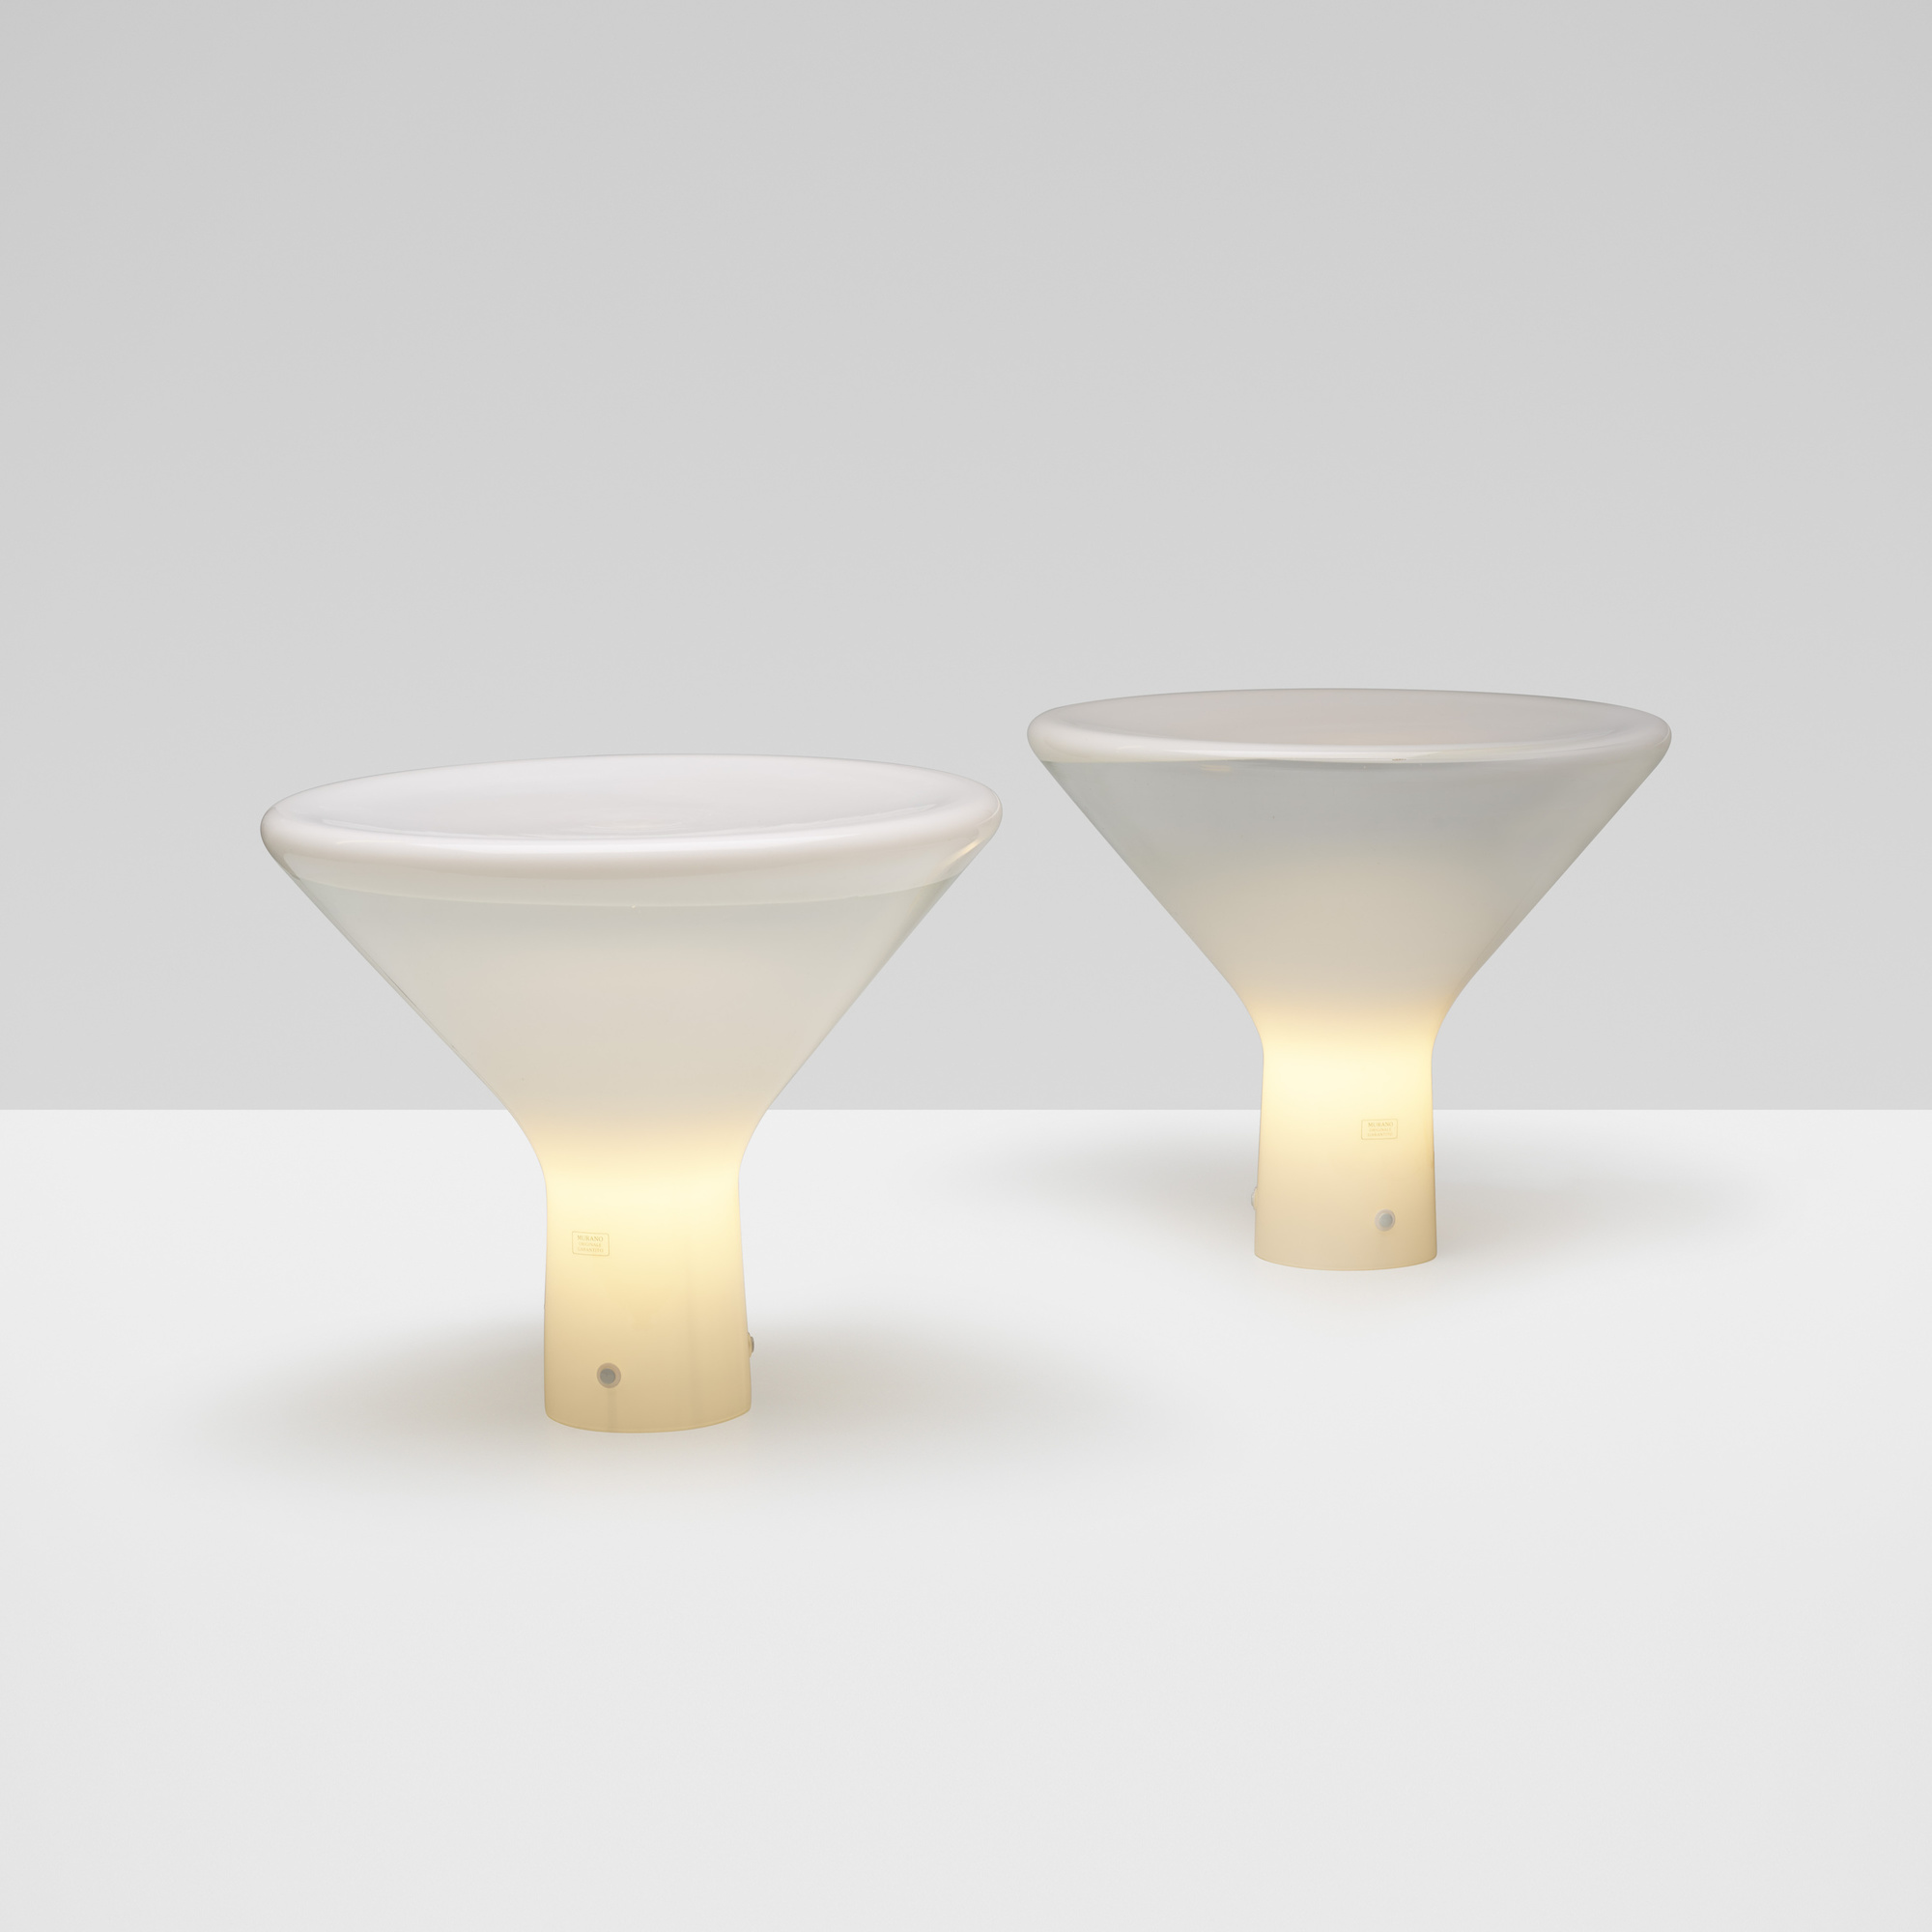 234: Angelo Mangiarotti / Accelsa table lamps, pair (1 of 4)